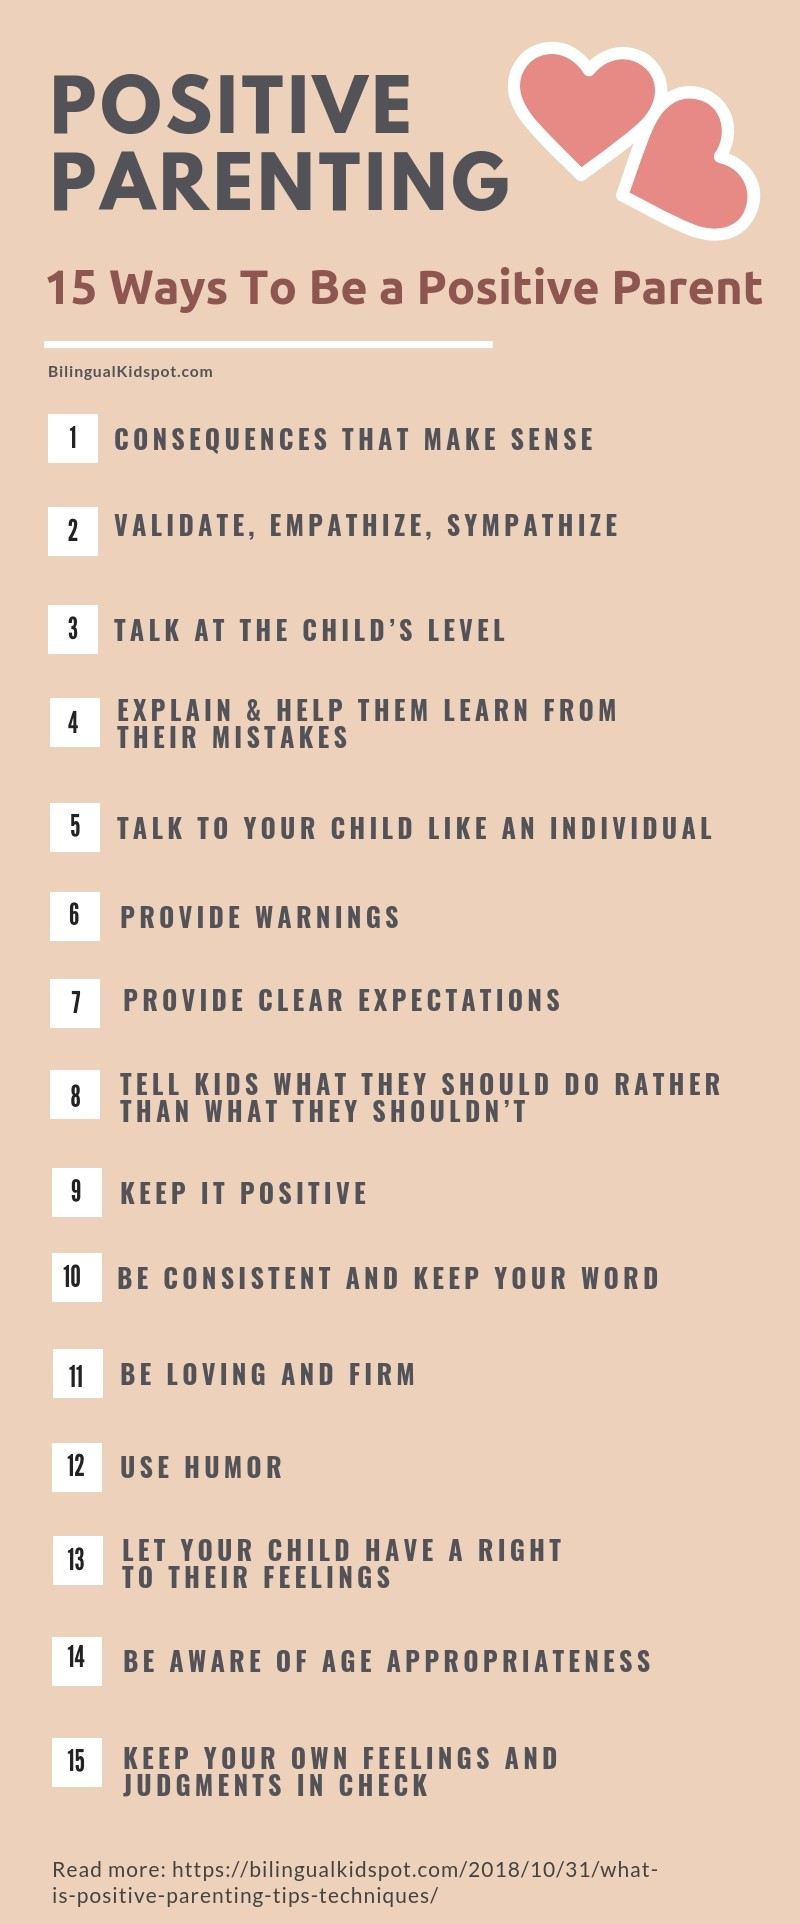 15 Positive Parenting Tips & Techniques Every Parent Should